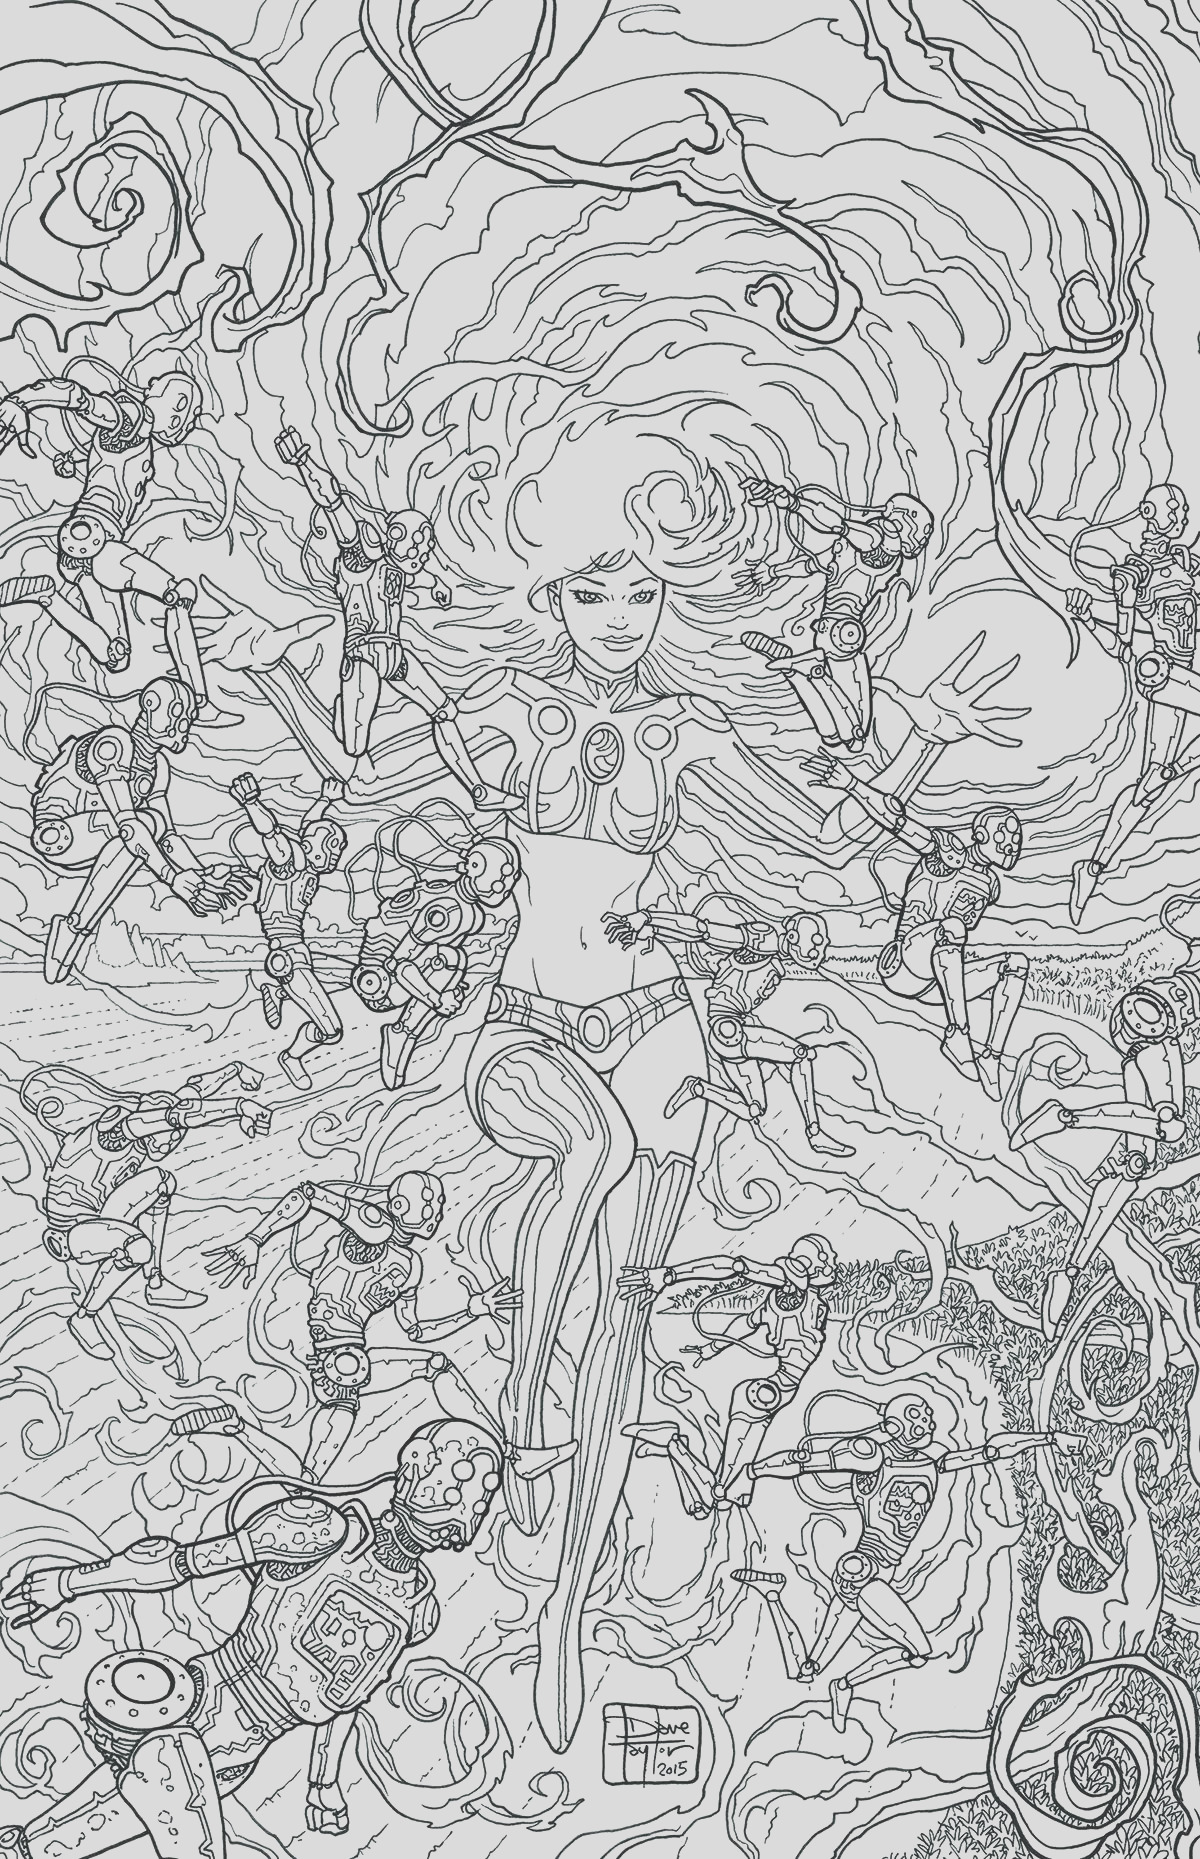 starfire 8 adult coloring book cover